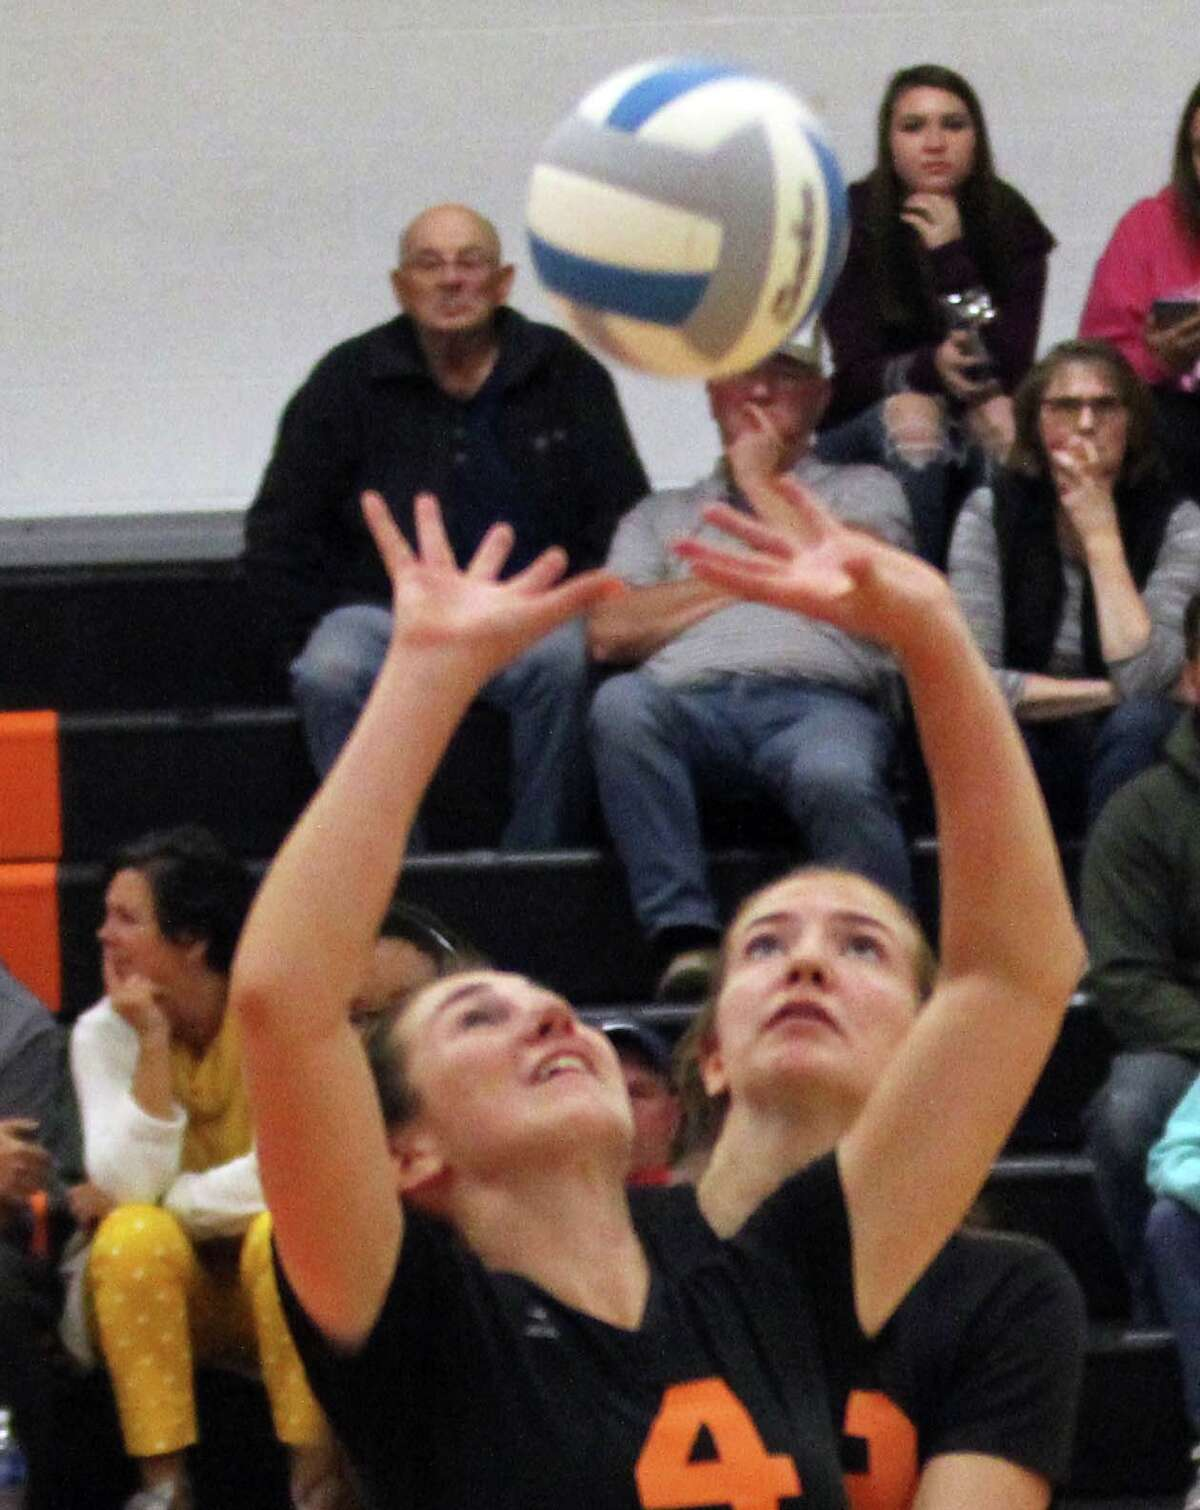 The Ubly volleyball team beat visiting Memphis in straight sets, 25-10, 25-14 and 25-12, on Tuesday, Oct. 8, 2019.